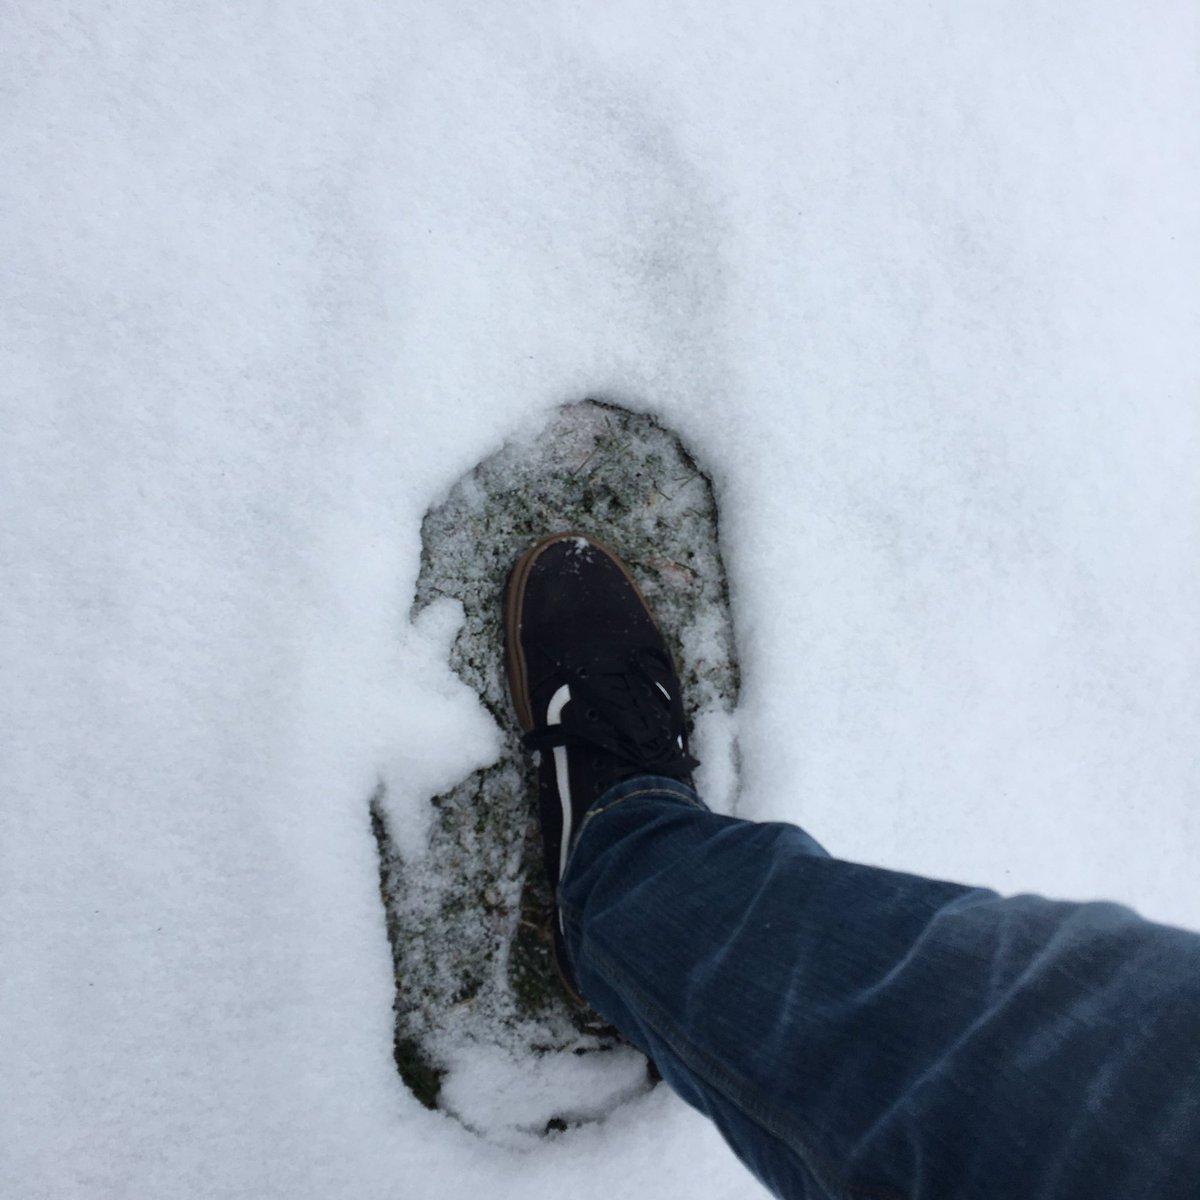 Hey kids...a week ago I took steps in the snow...now the footprint is MUCH bigger than my foot! What do you think happened? #Science #STEM #weather